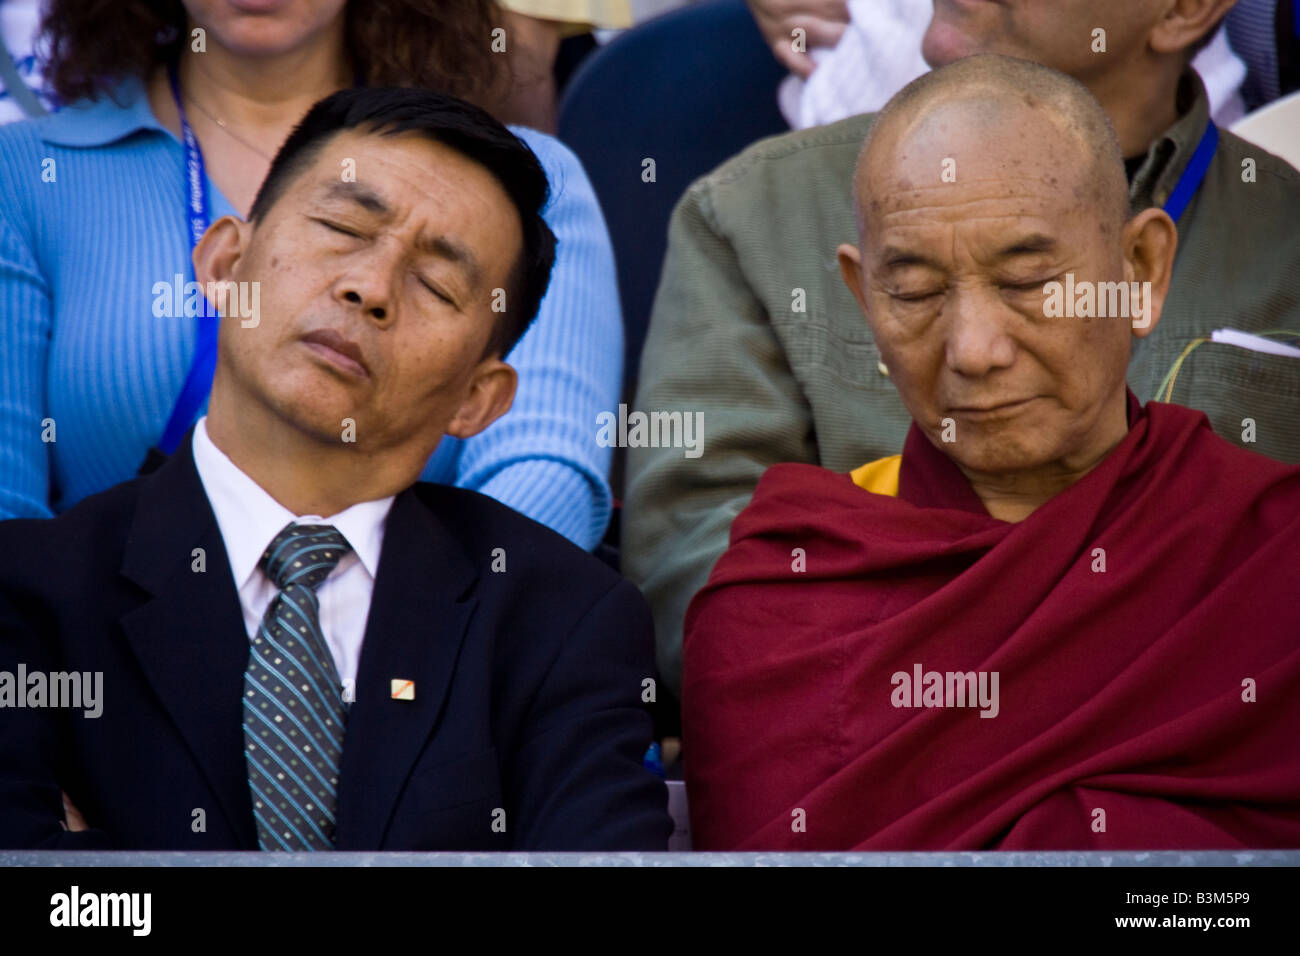 The Dalai Lama s visit to Seattle 04 12 2008 Seattle Qwest Field A monk and a man in the business suit take a nap - Stock Image